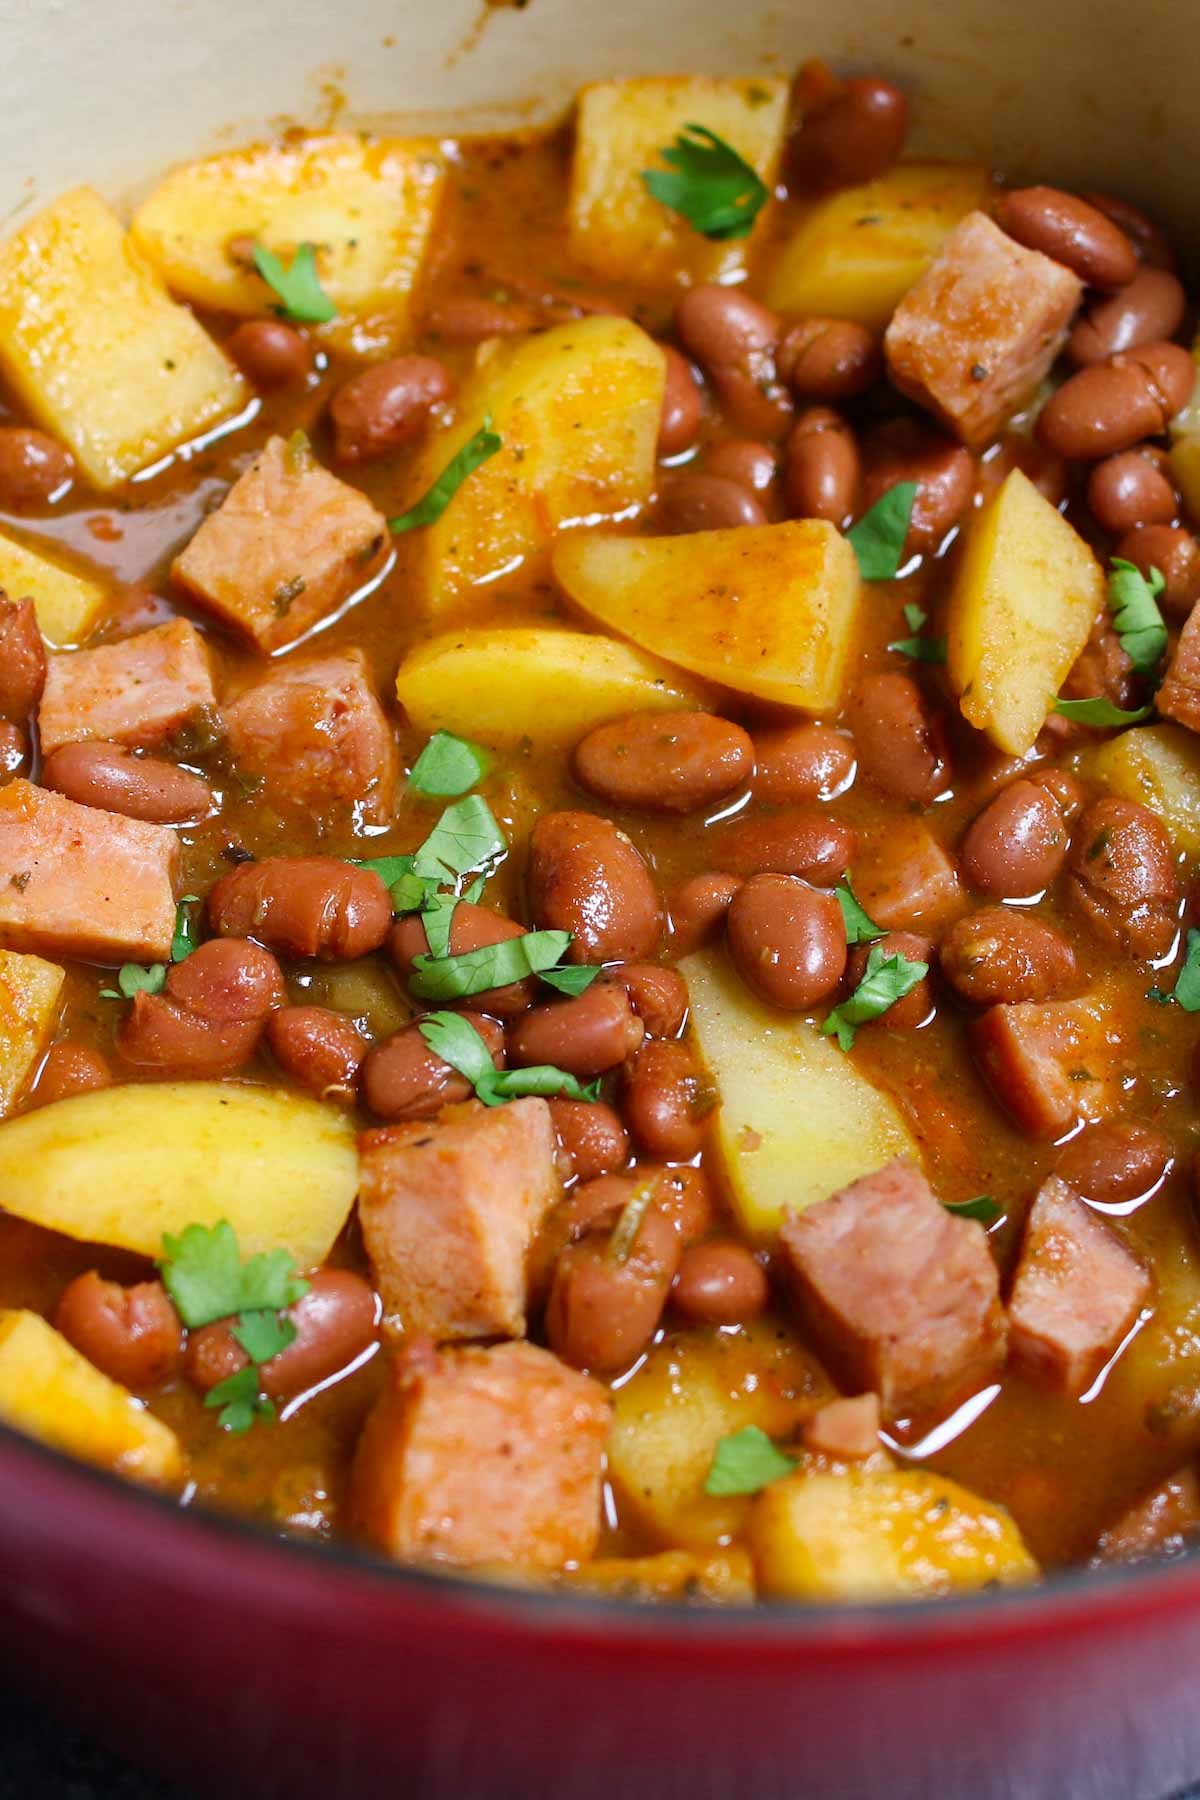 Puerto Rican Rice and Beans are saucy, flavorful, and comforting. Delicious Goya red beans are simmered in sofrito, tomato and sazon sauce! This Puerto Rican staple is also known as Habichuelas or stewed beans, and leftovers are perfect for meal prep.